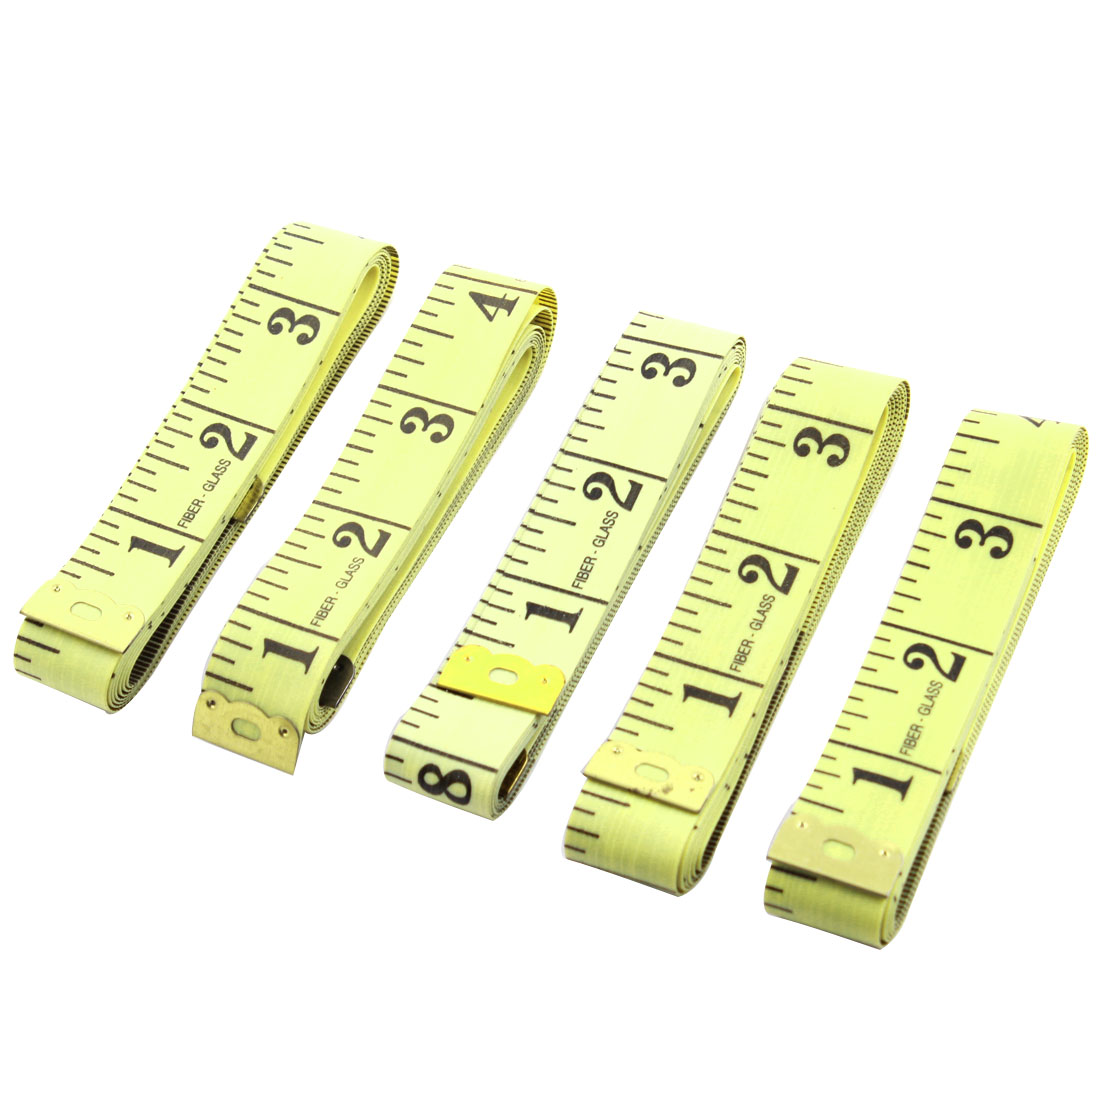 5 Pcs Yellow Soft Plastic 1.3cm Width Cloth Flat Ruler Tape 150cm Measure Length